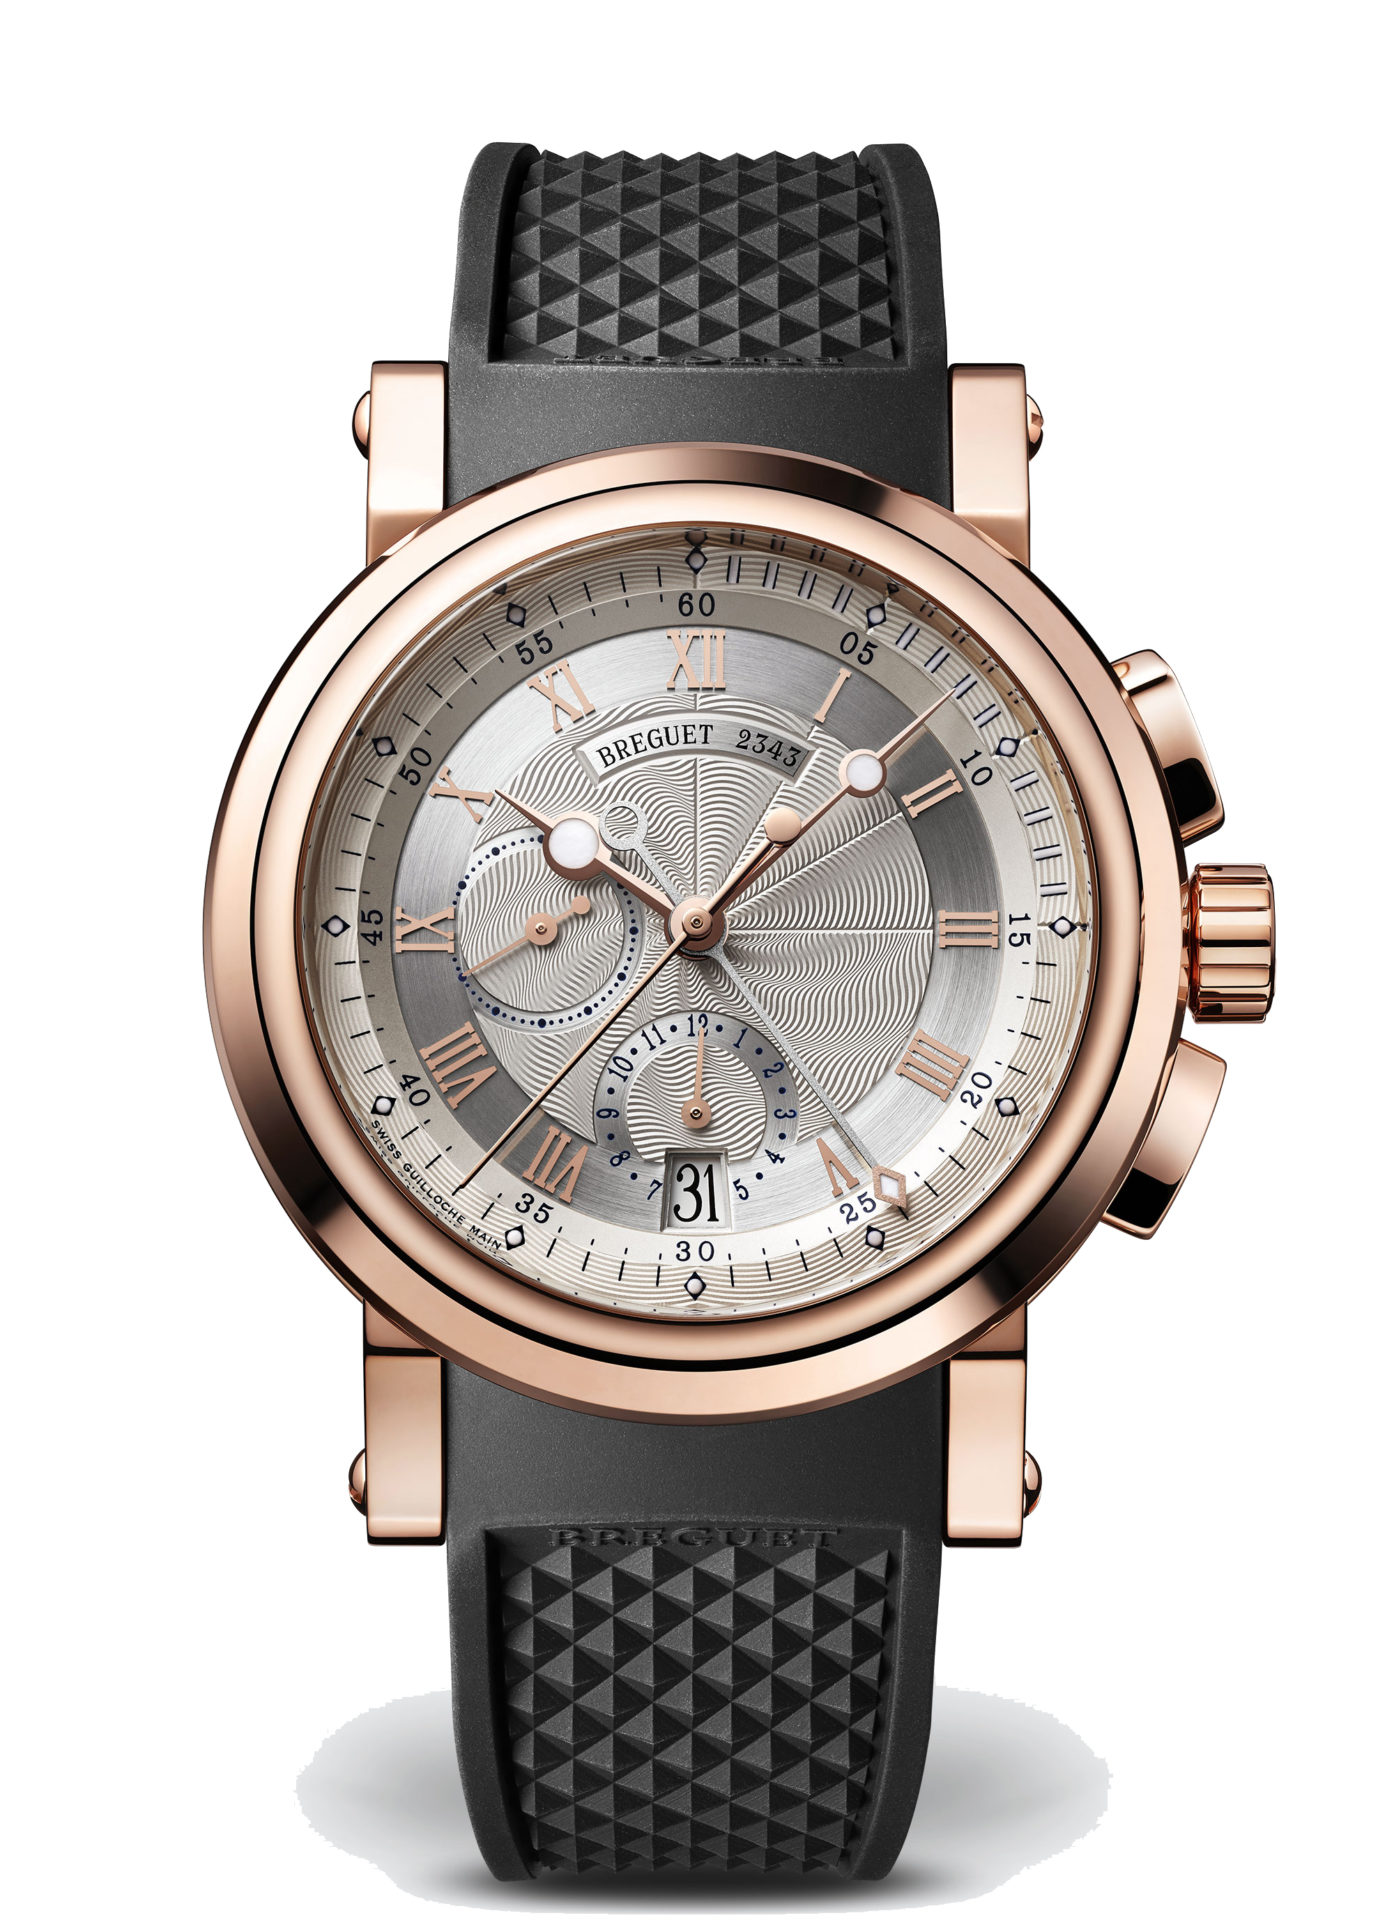 Breguet-La-Marine-5827-Hall-of-Time-5827br125zu